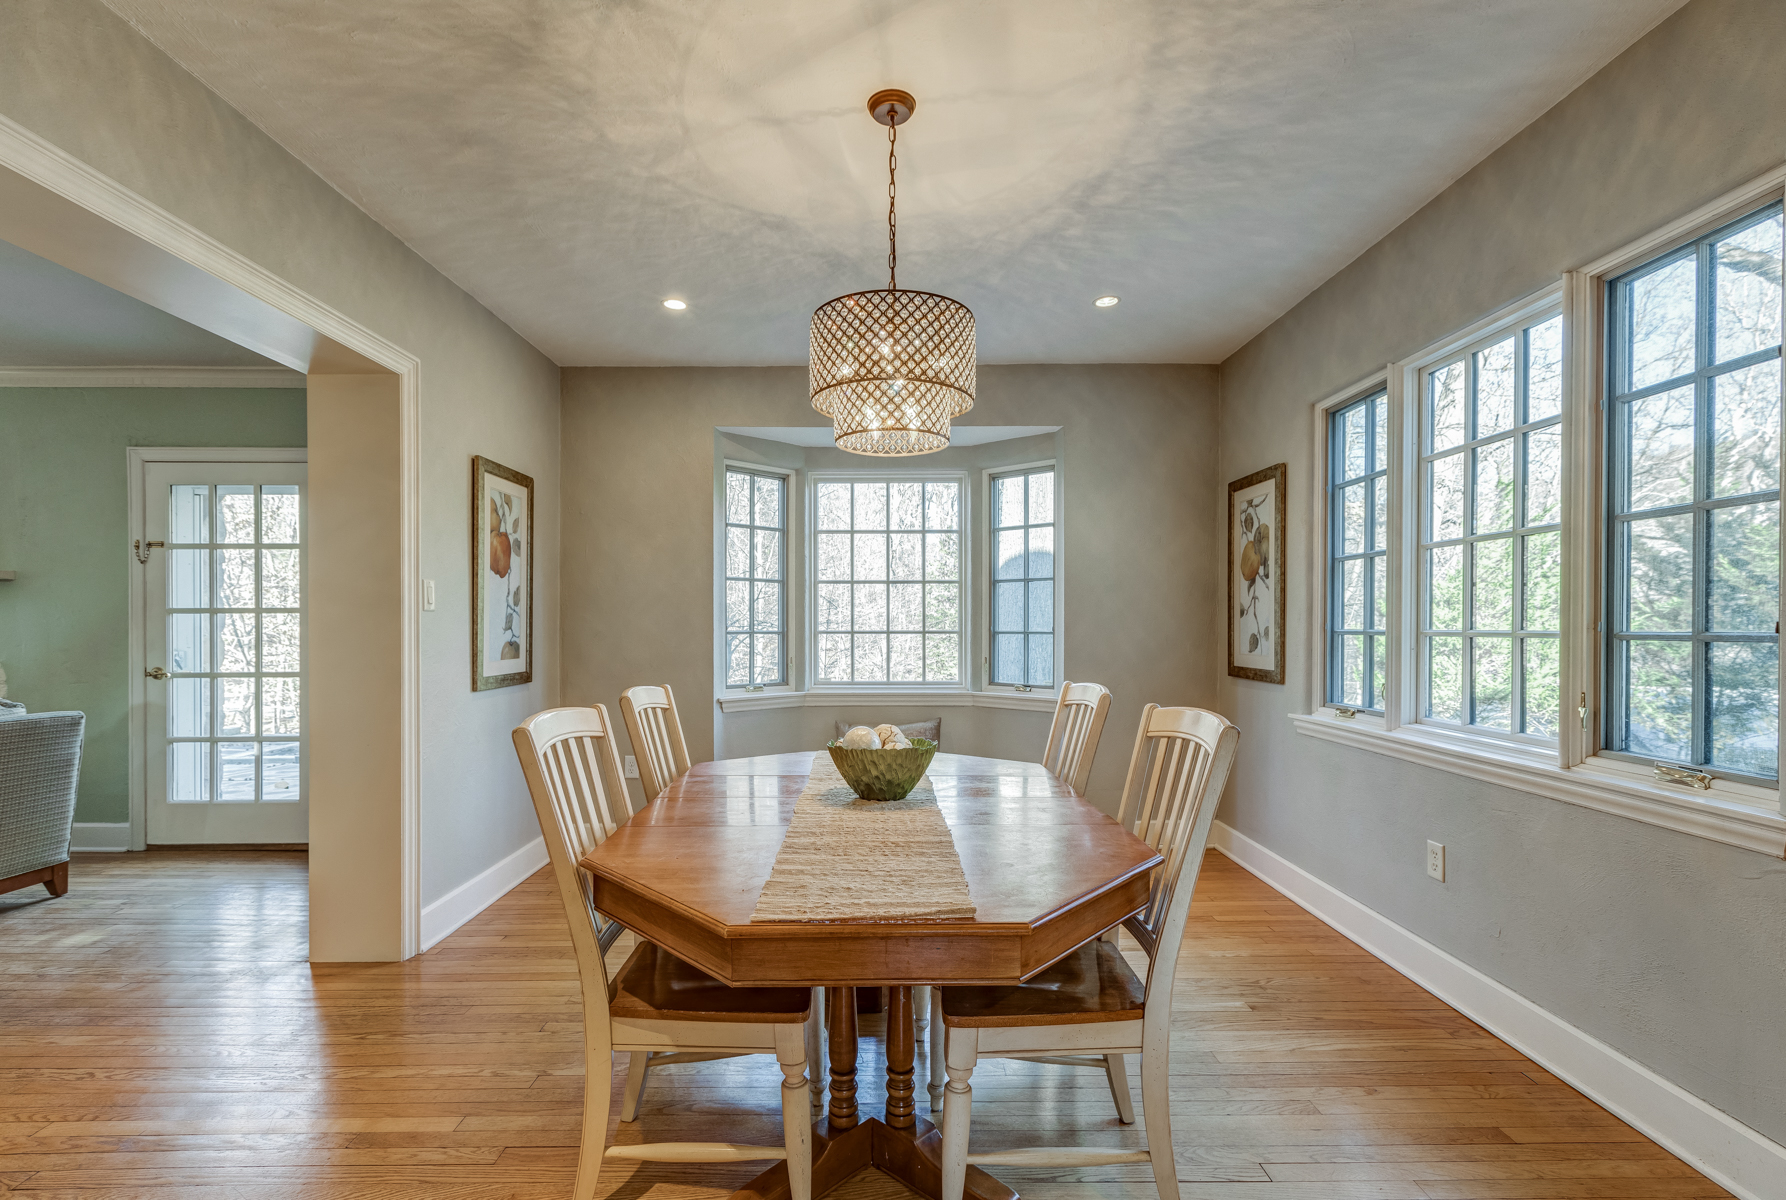 4. Dining Room with Bay Window_53A1743_4_5